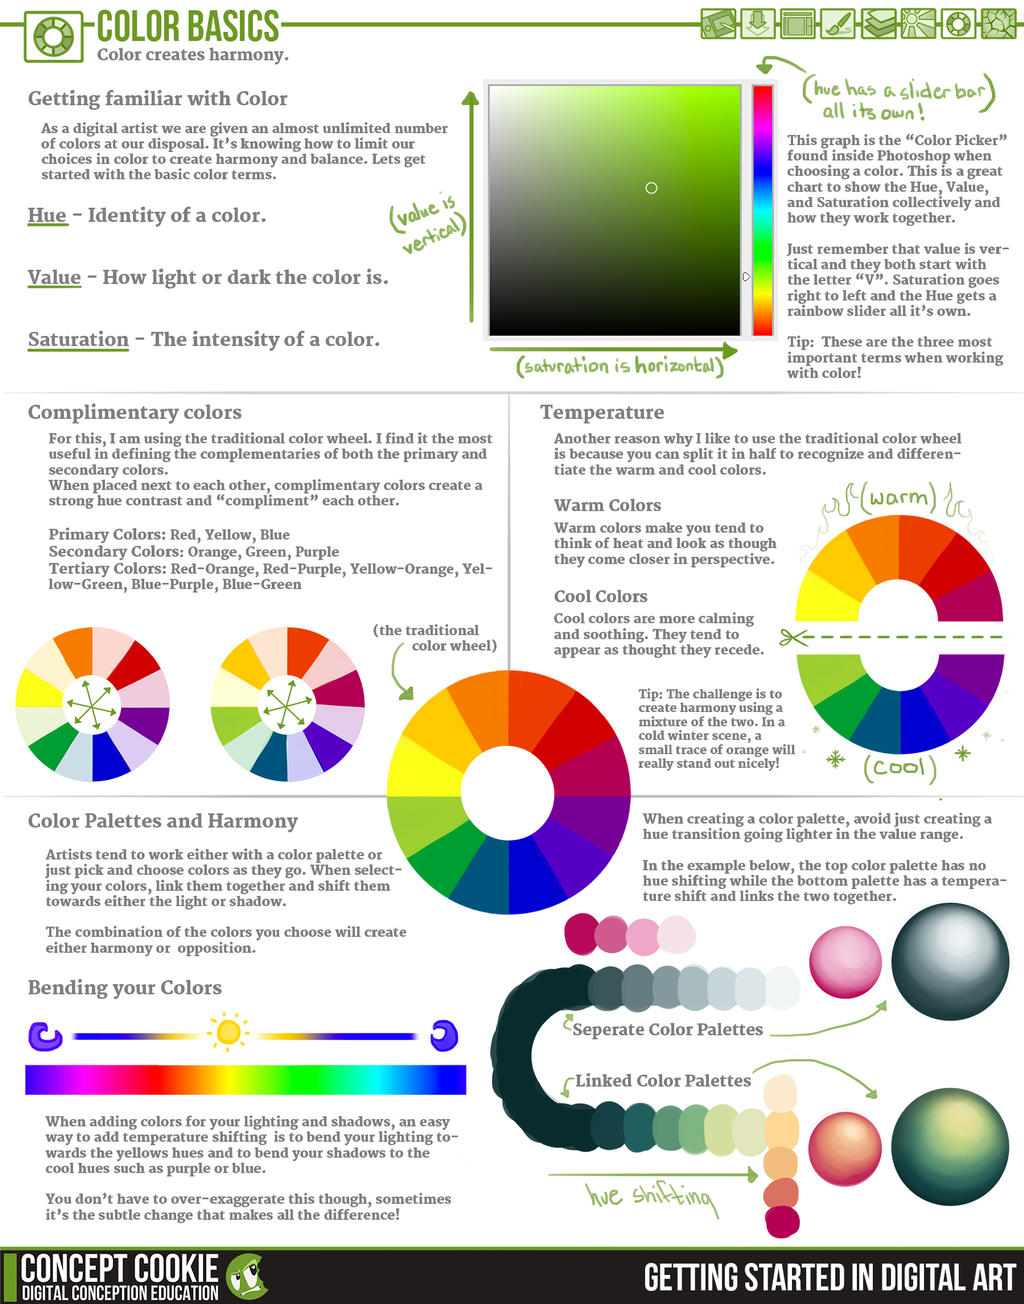 Color Basics getting started: color basicscgcookie on deviantart